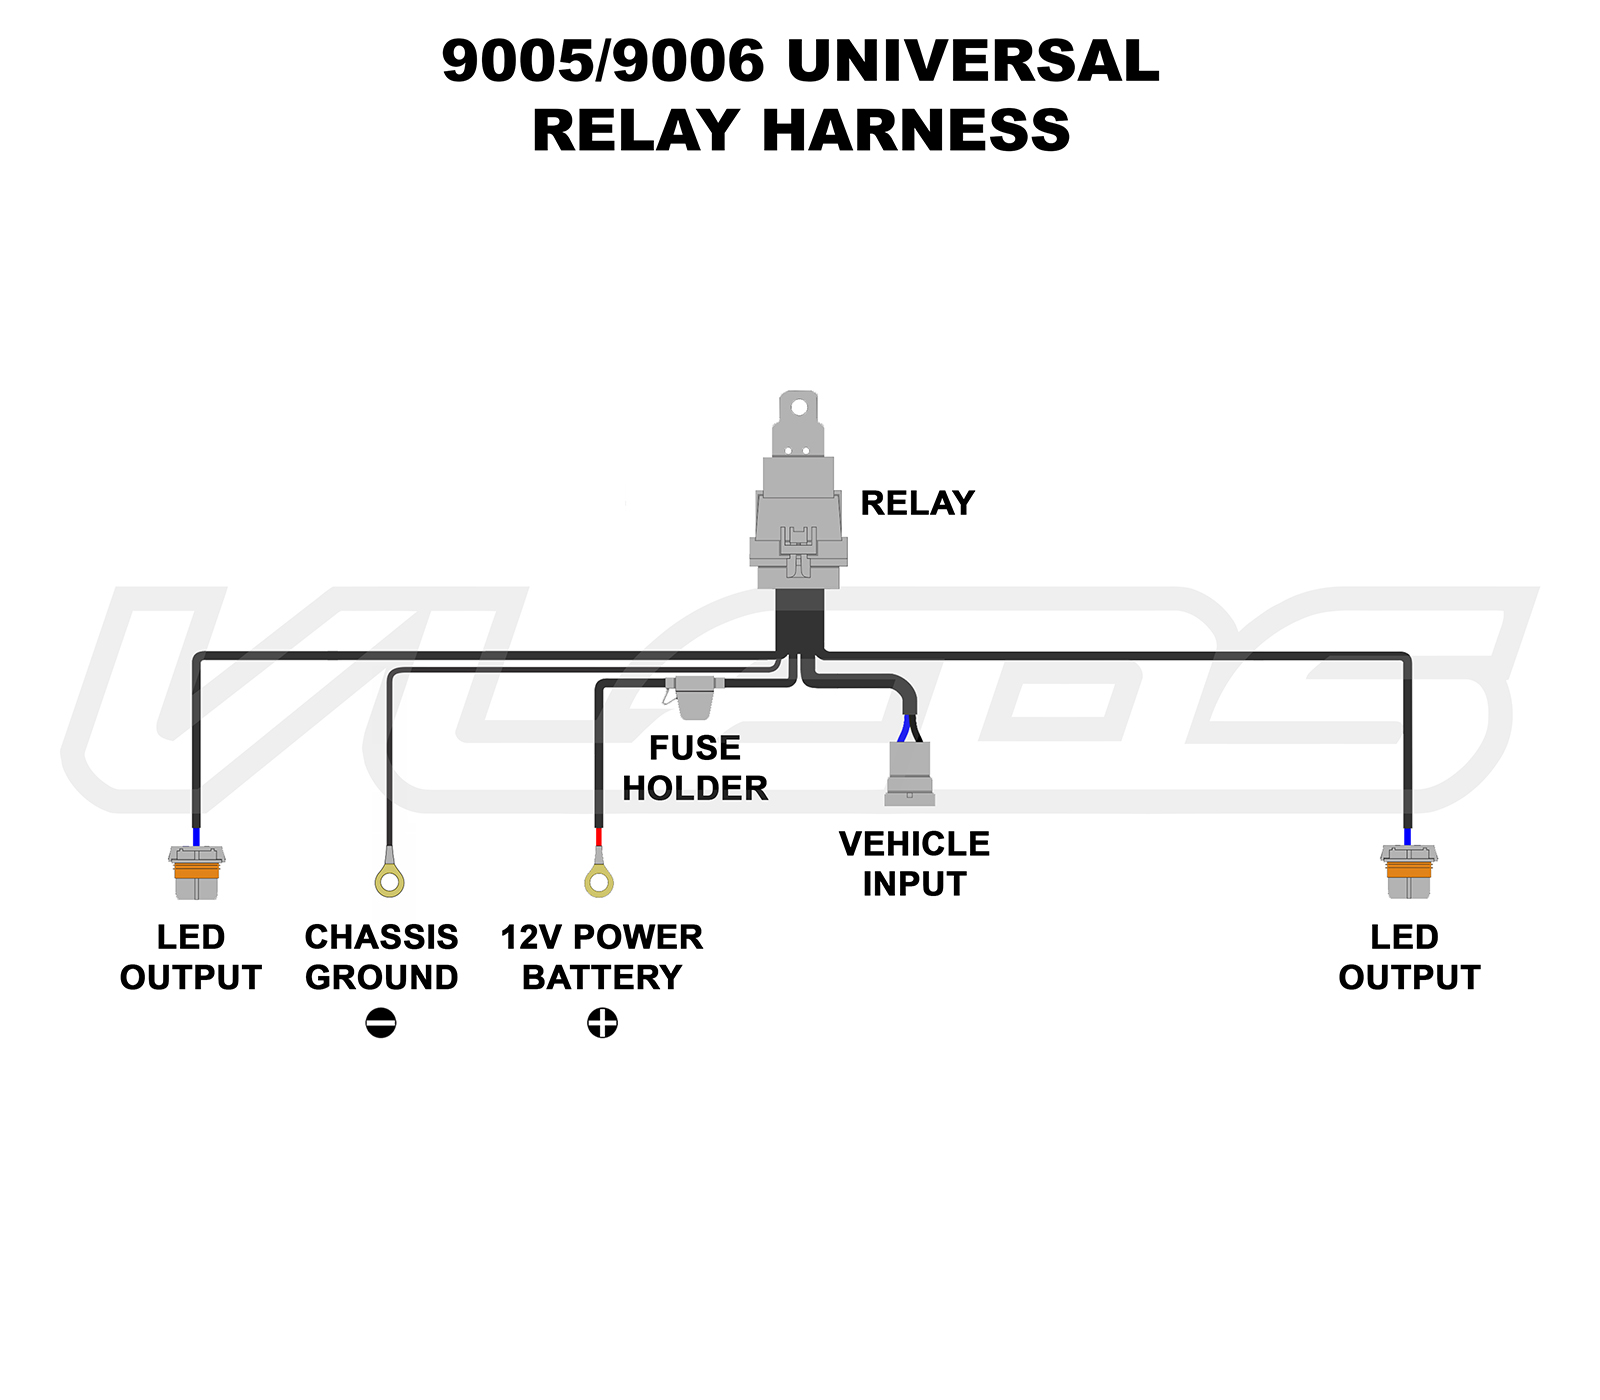 Universal Gm Headlight Switch Wiring Diagram. Gm. Auto